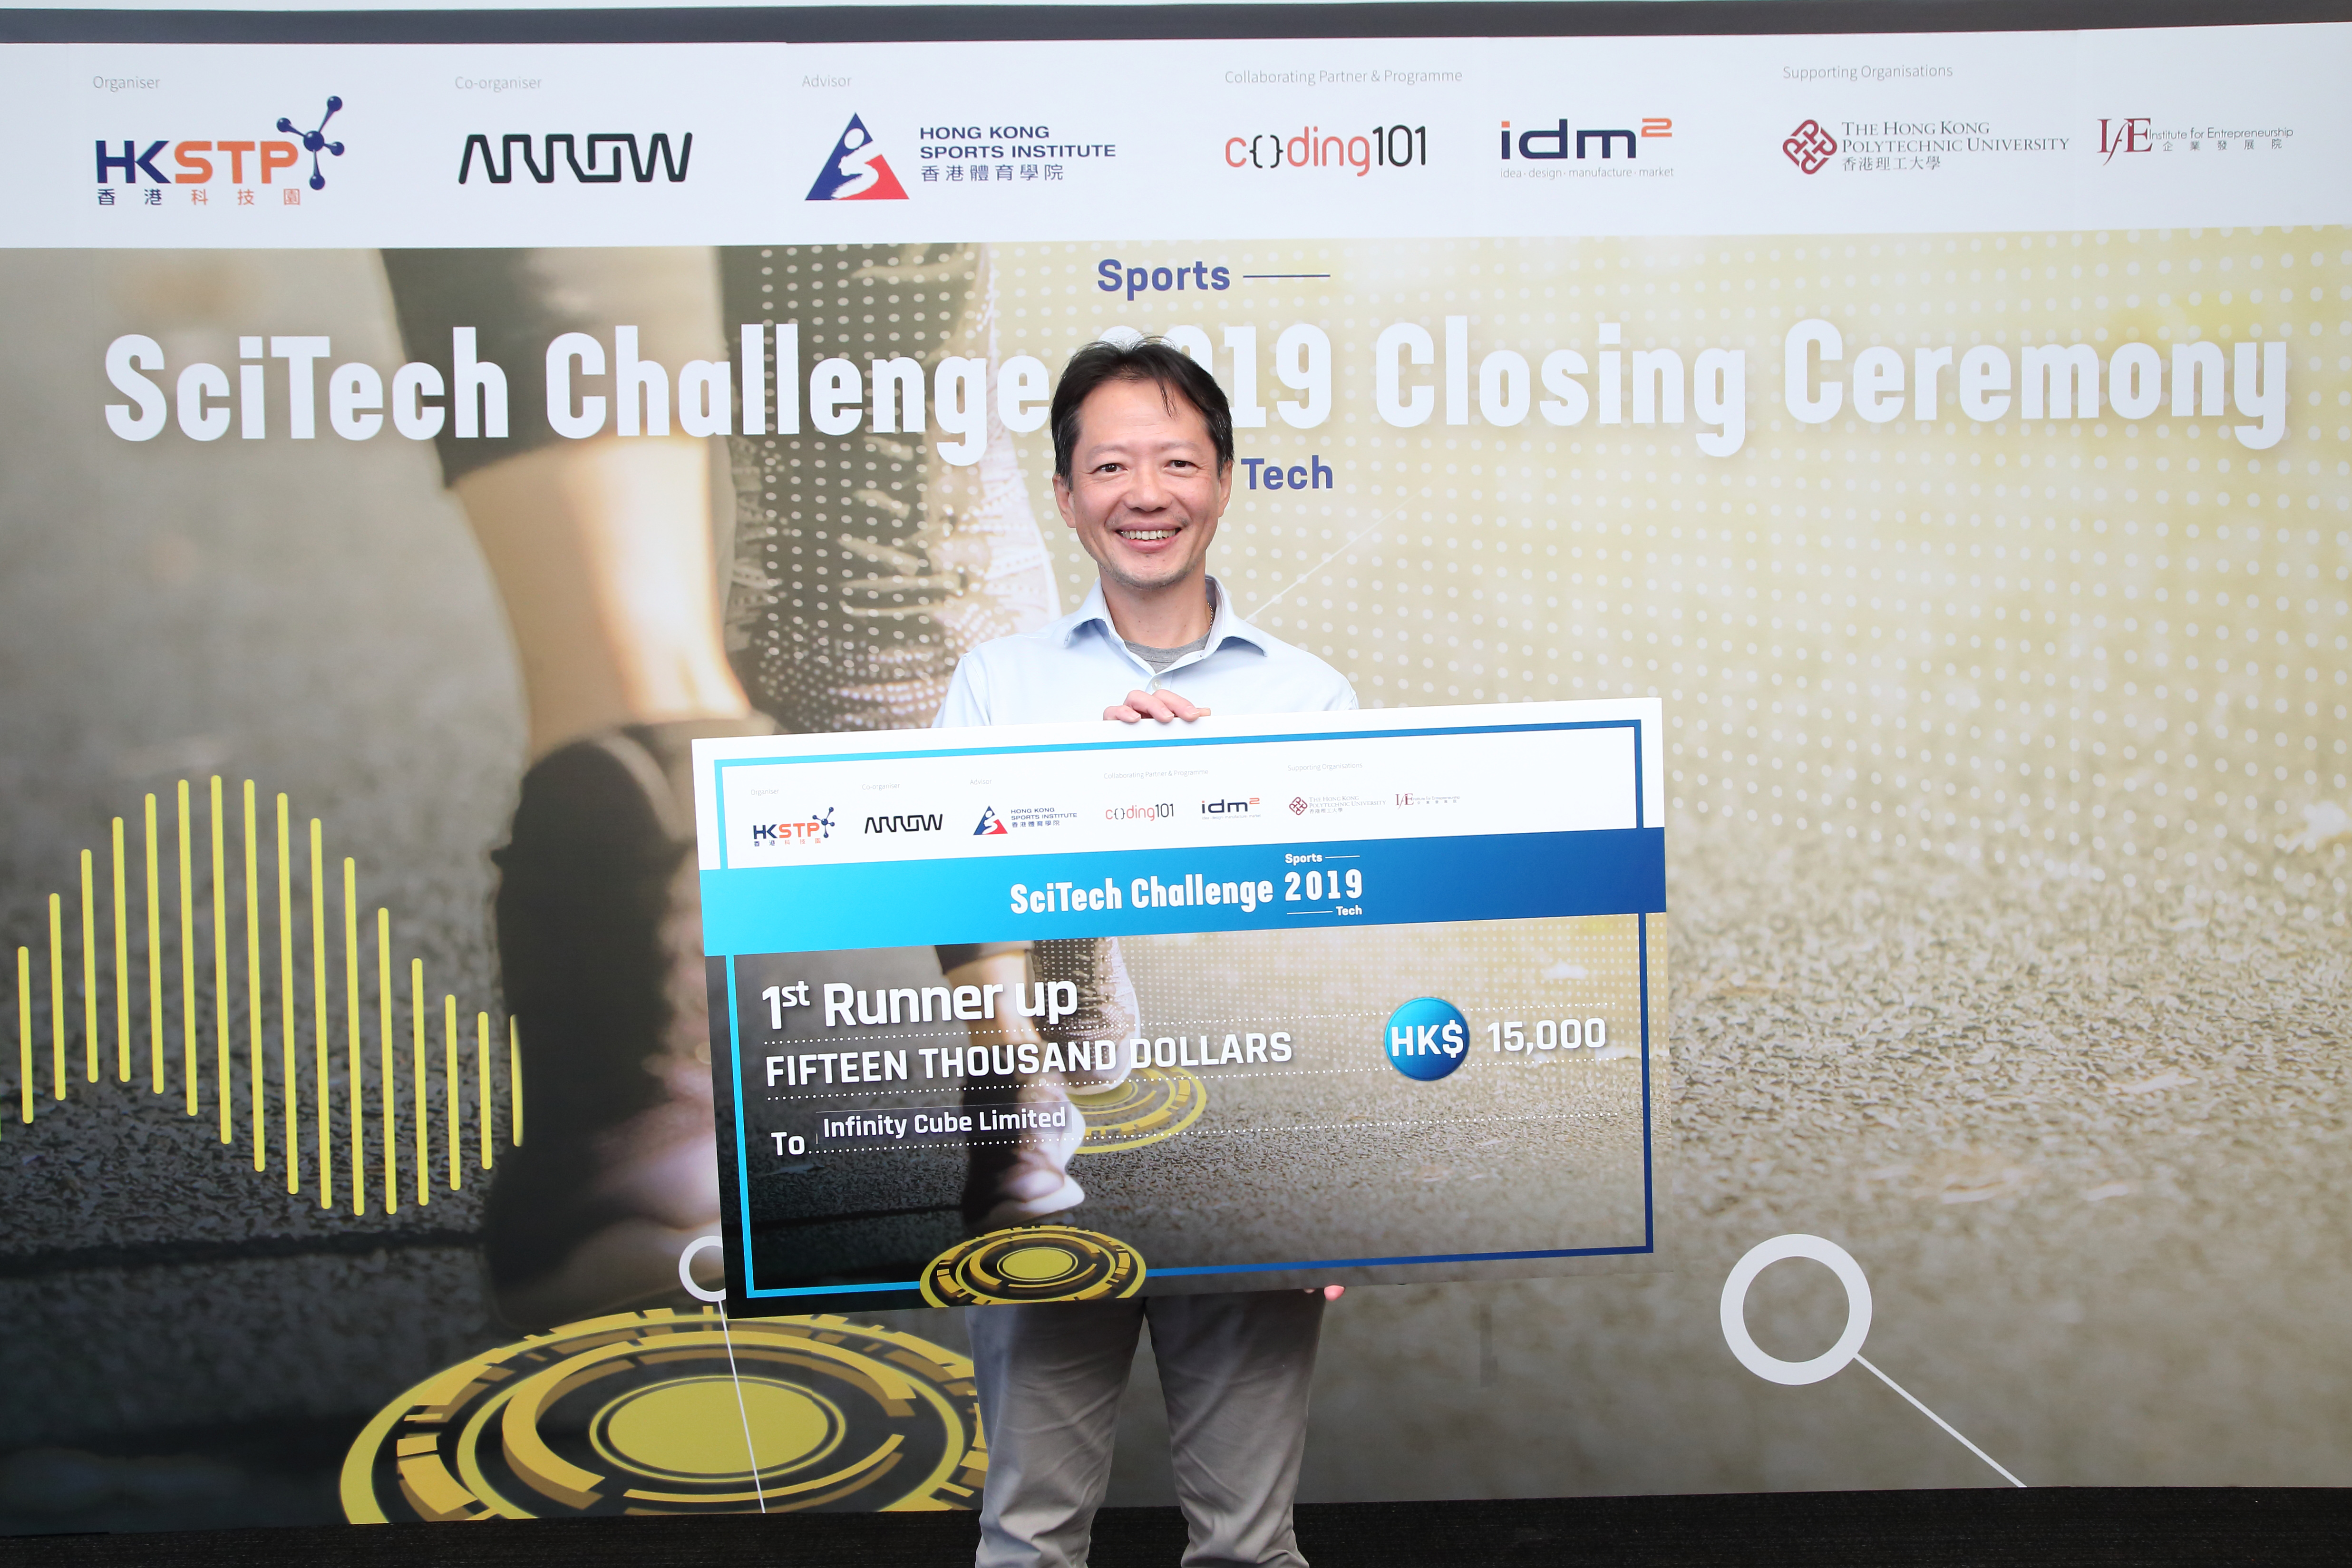 eyes3 is 1st Runner's Up of the SciTech Challenge 2019